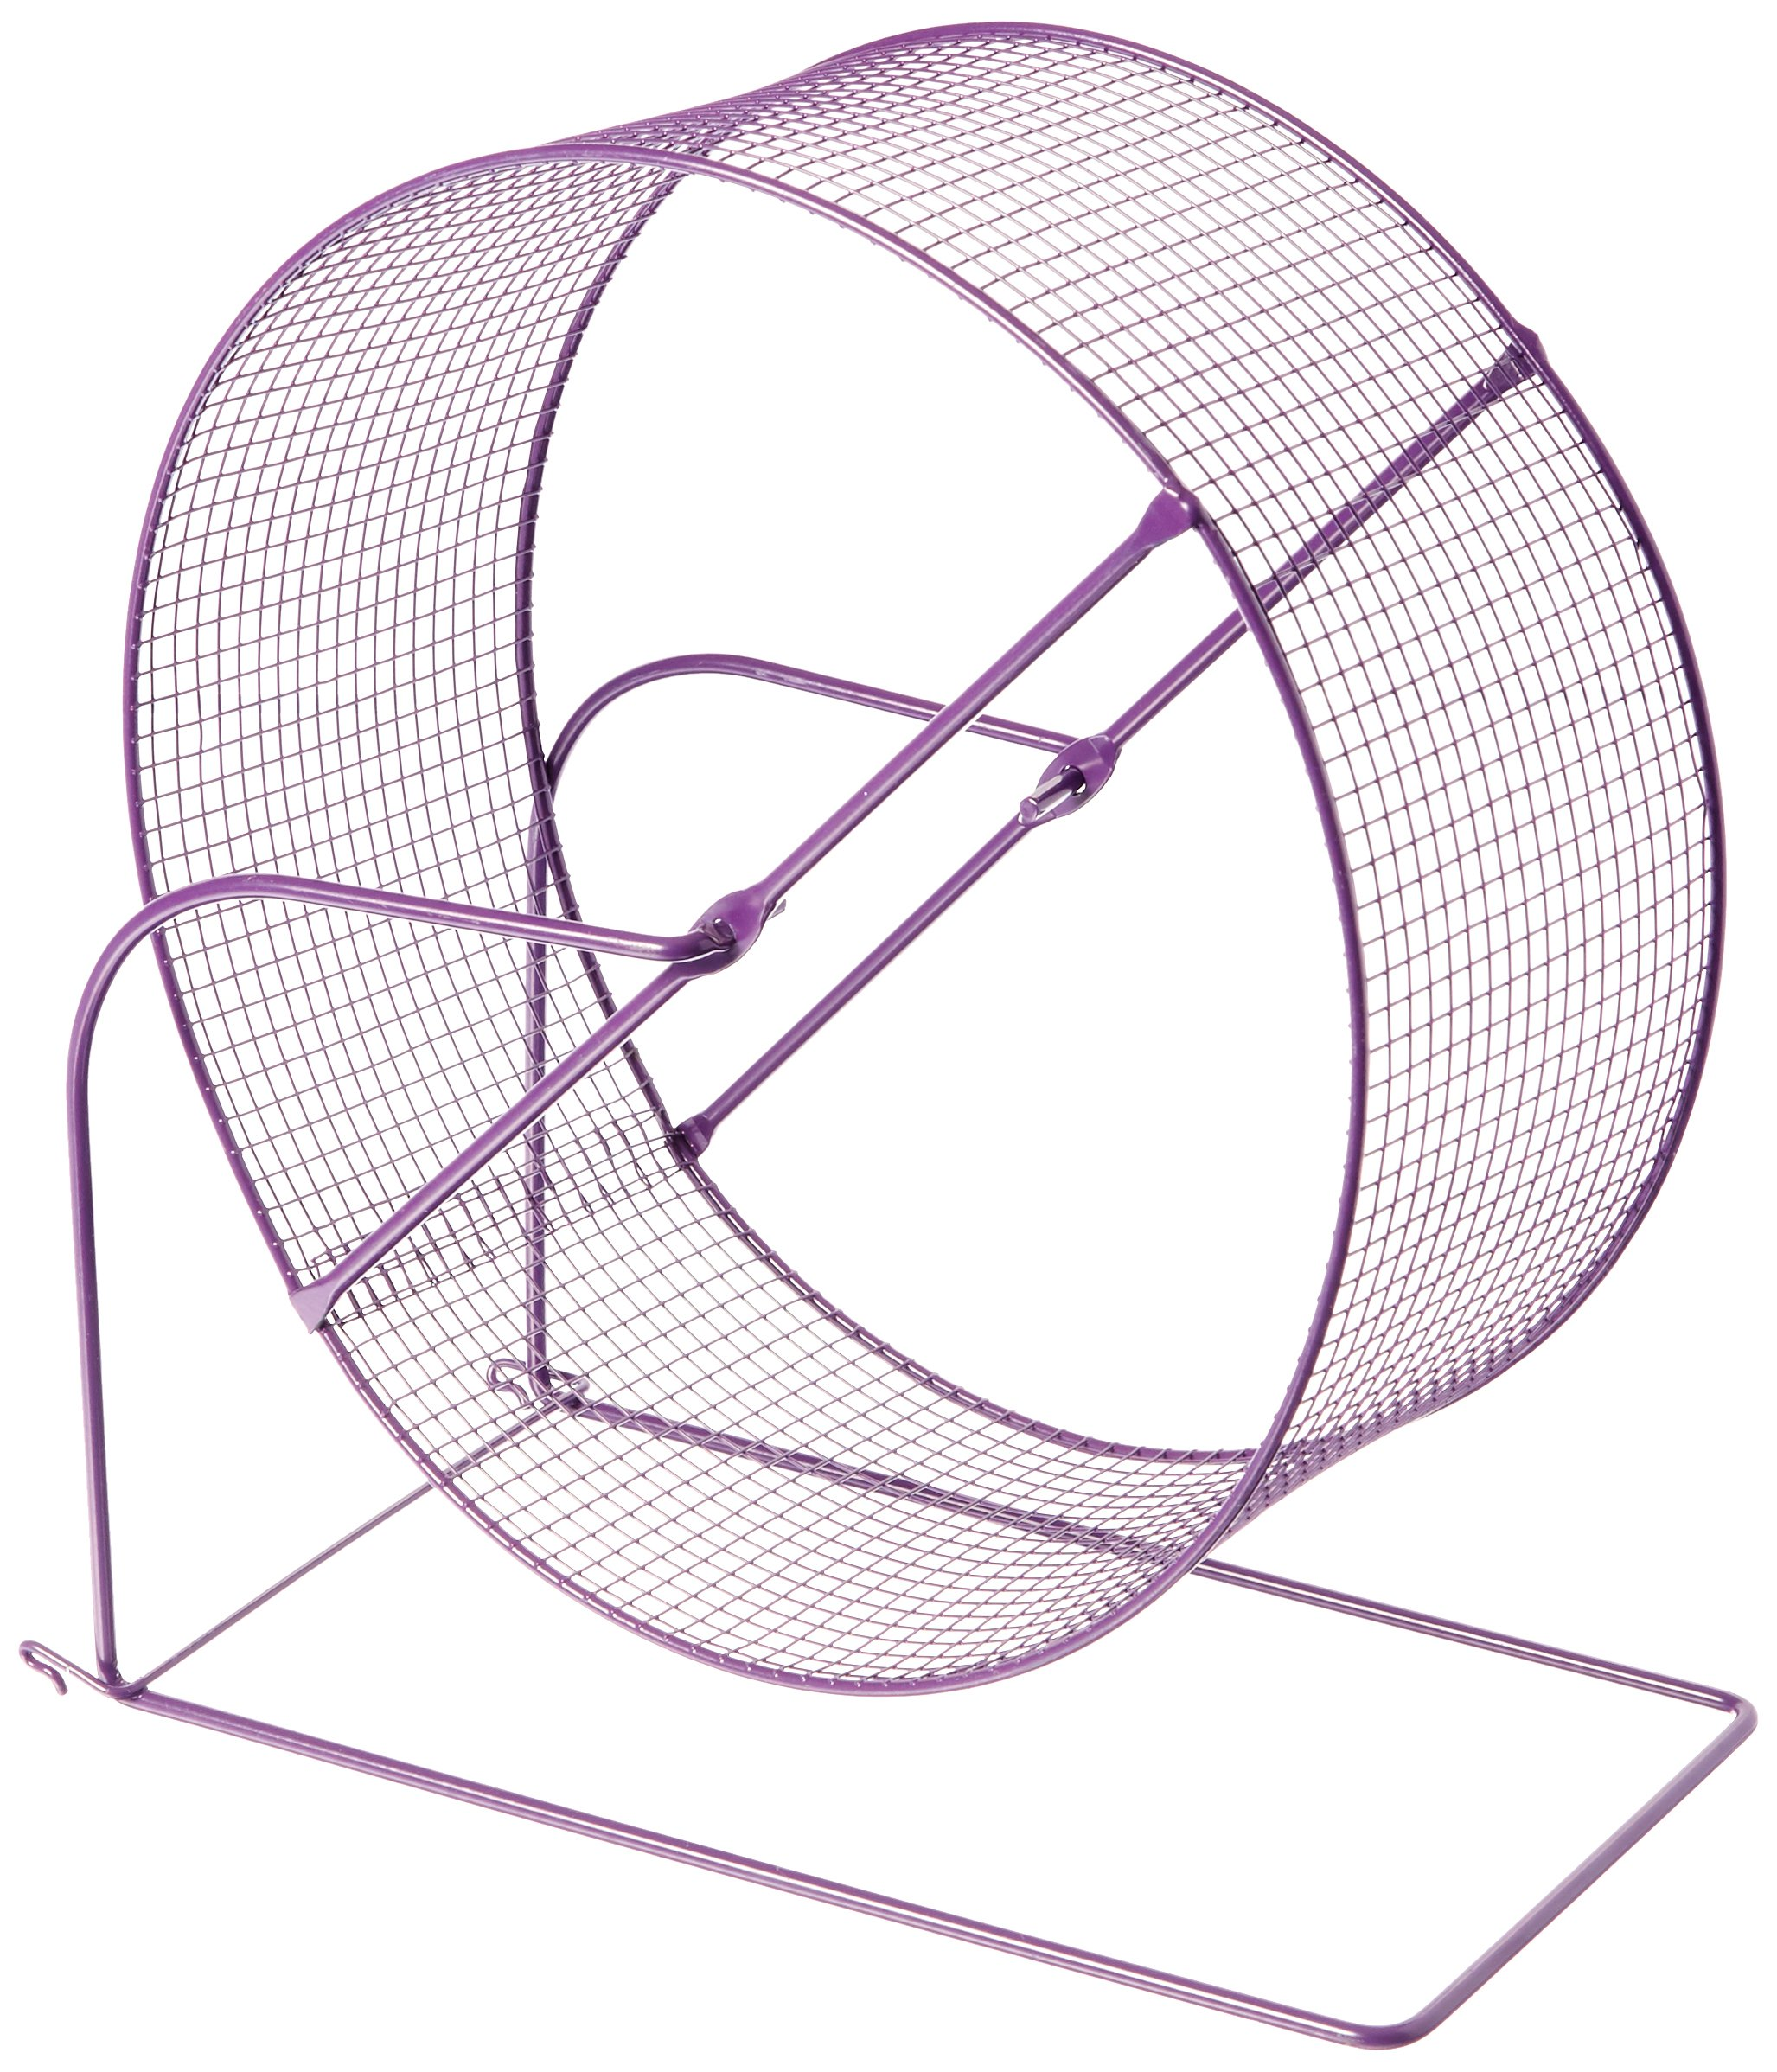 Prevue Pet Products SPV90014 Wire Mesh Ferret/Guinea Pig Wheel Toy, 11-Inch, Colors Vary